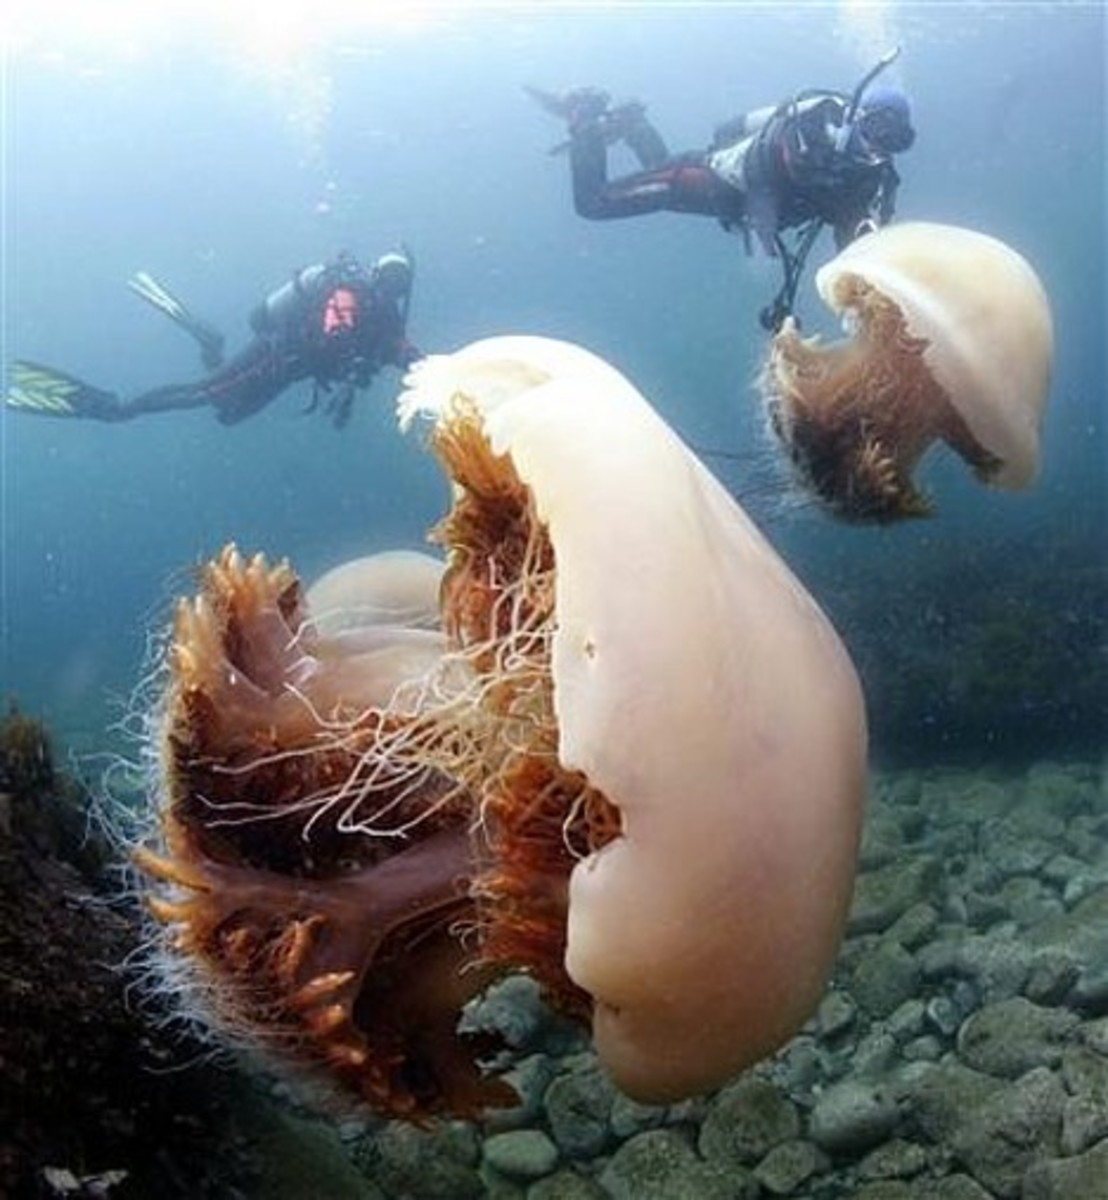 The giant Echizen Jellyfish shown in this photo is common in swarms off the coast of Japan. Its often used as a delicacy in china and Japan to make salads. Its venom is known to be poisonous to humans.